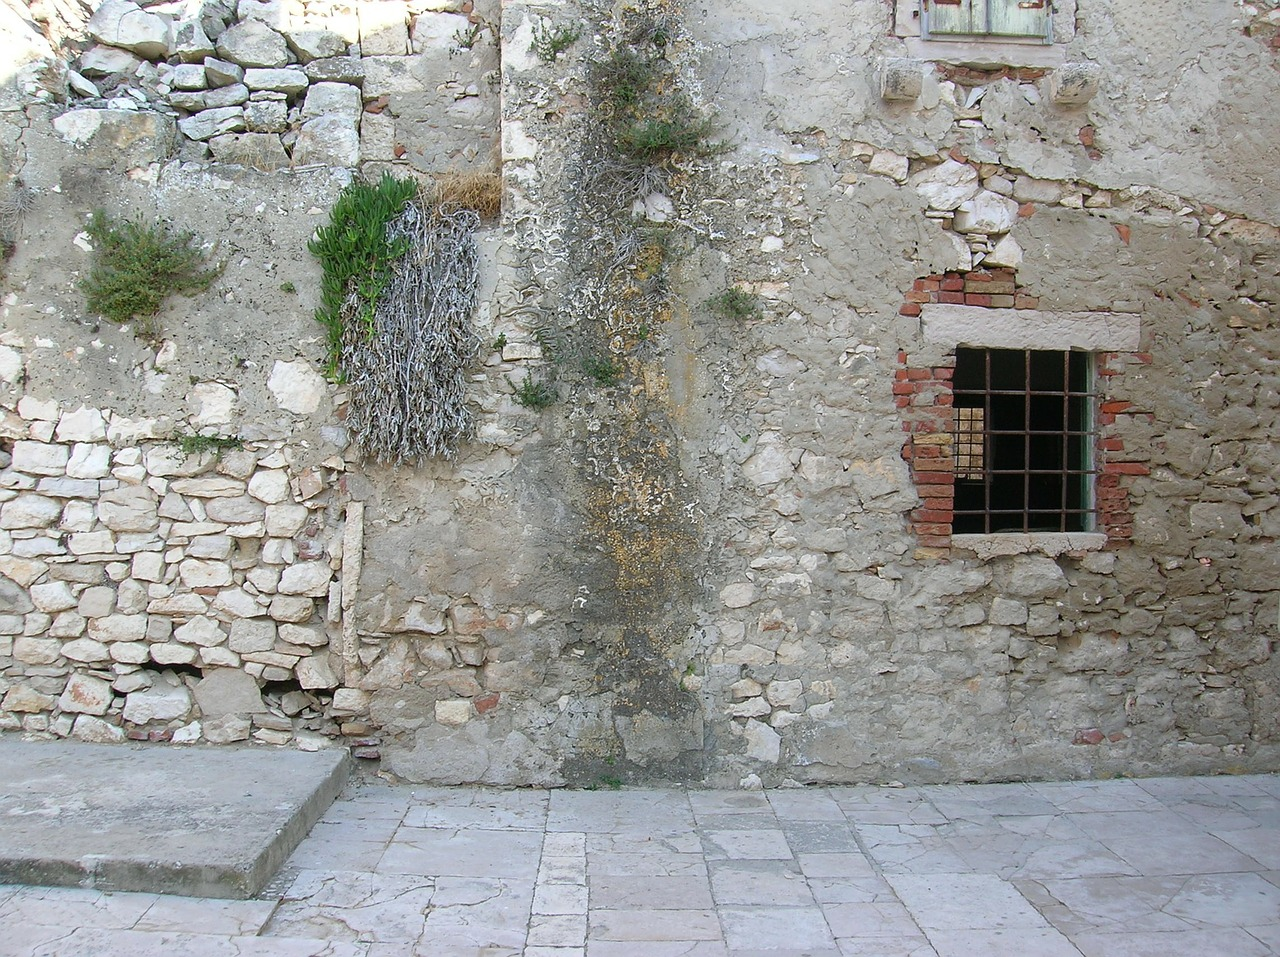 croatia susak island ruin free photo